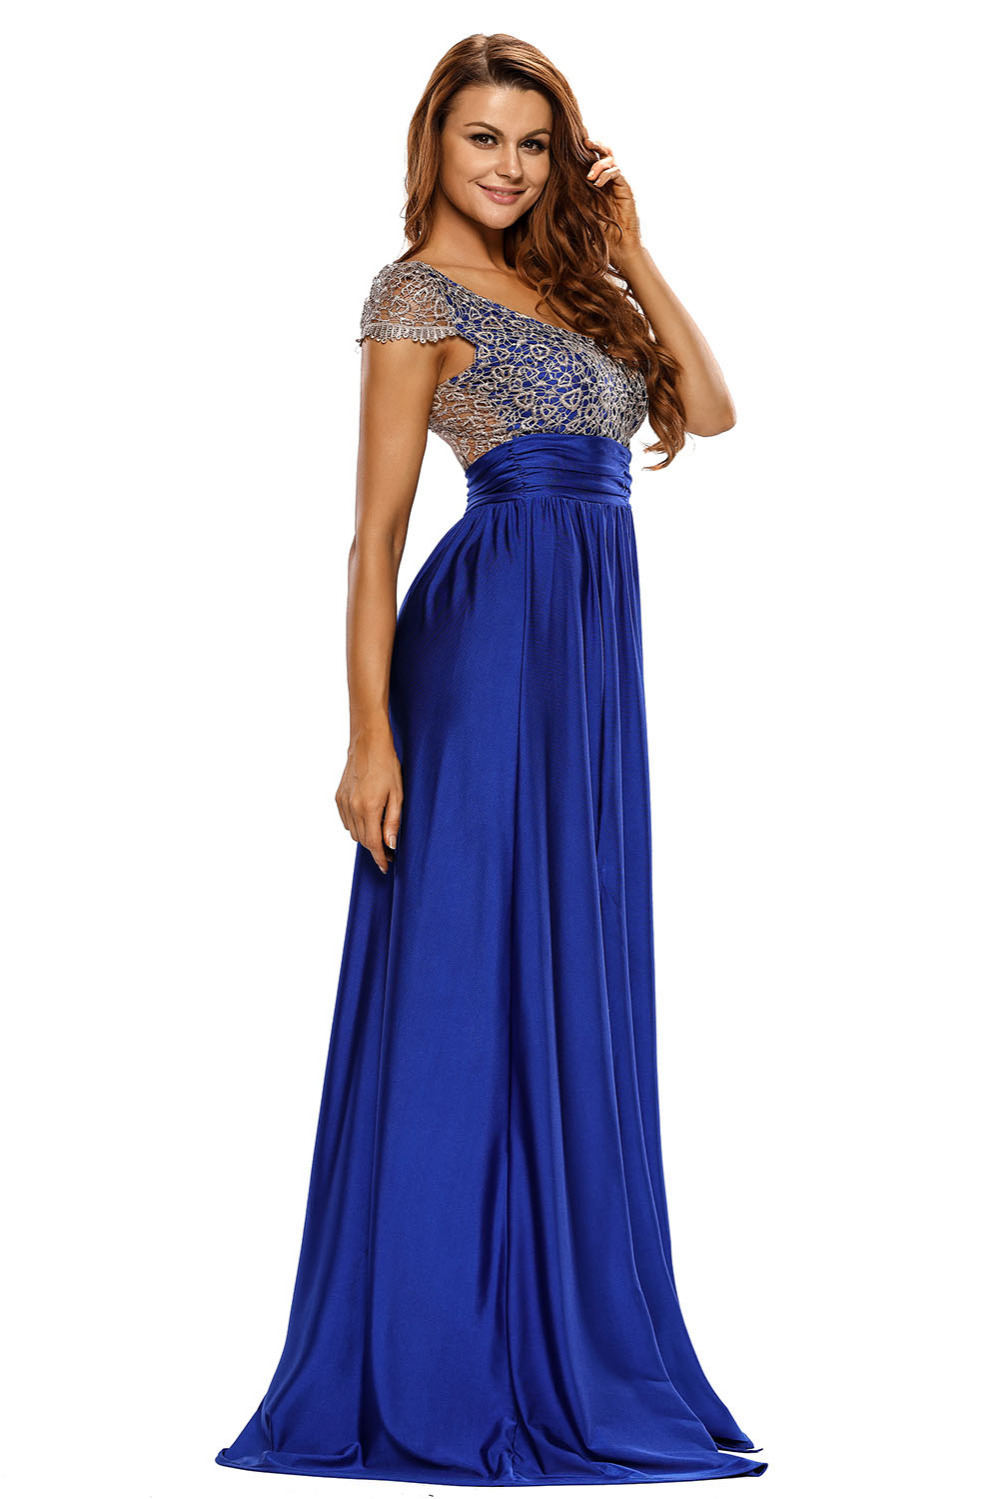 Compare Prices on Gold Dinner Dresses- Online Shopping/Buy Low ...